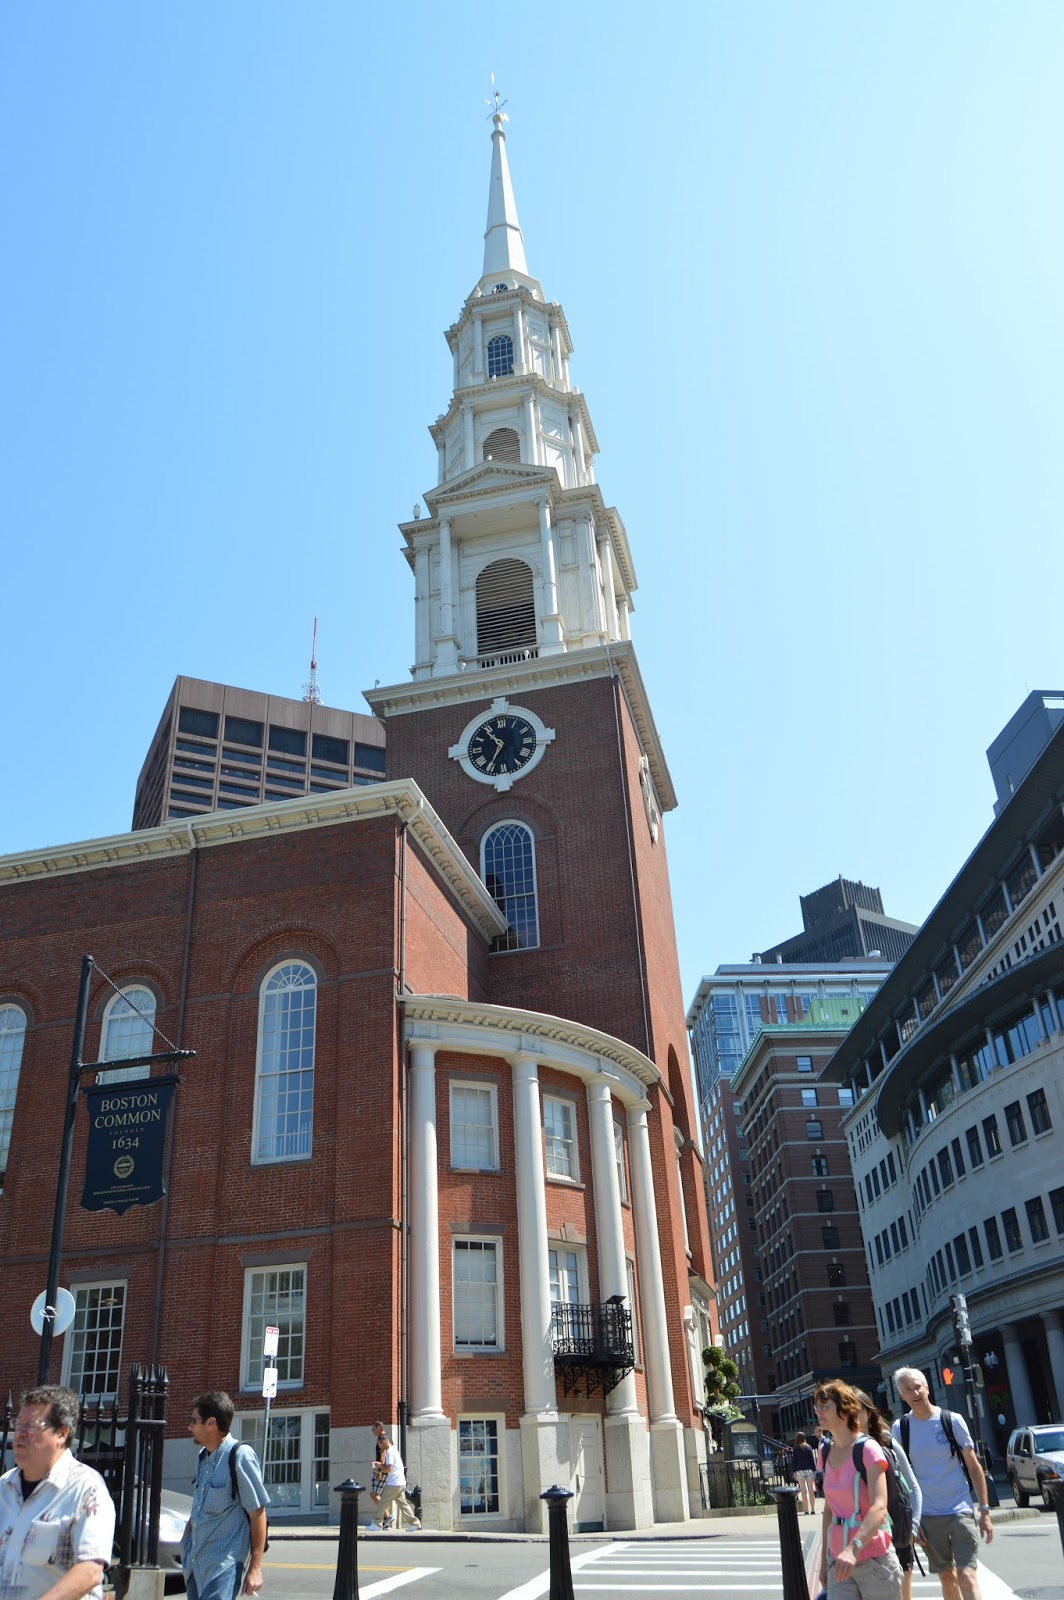 Boston, Freedom Trail, Park Street Church